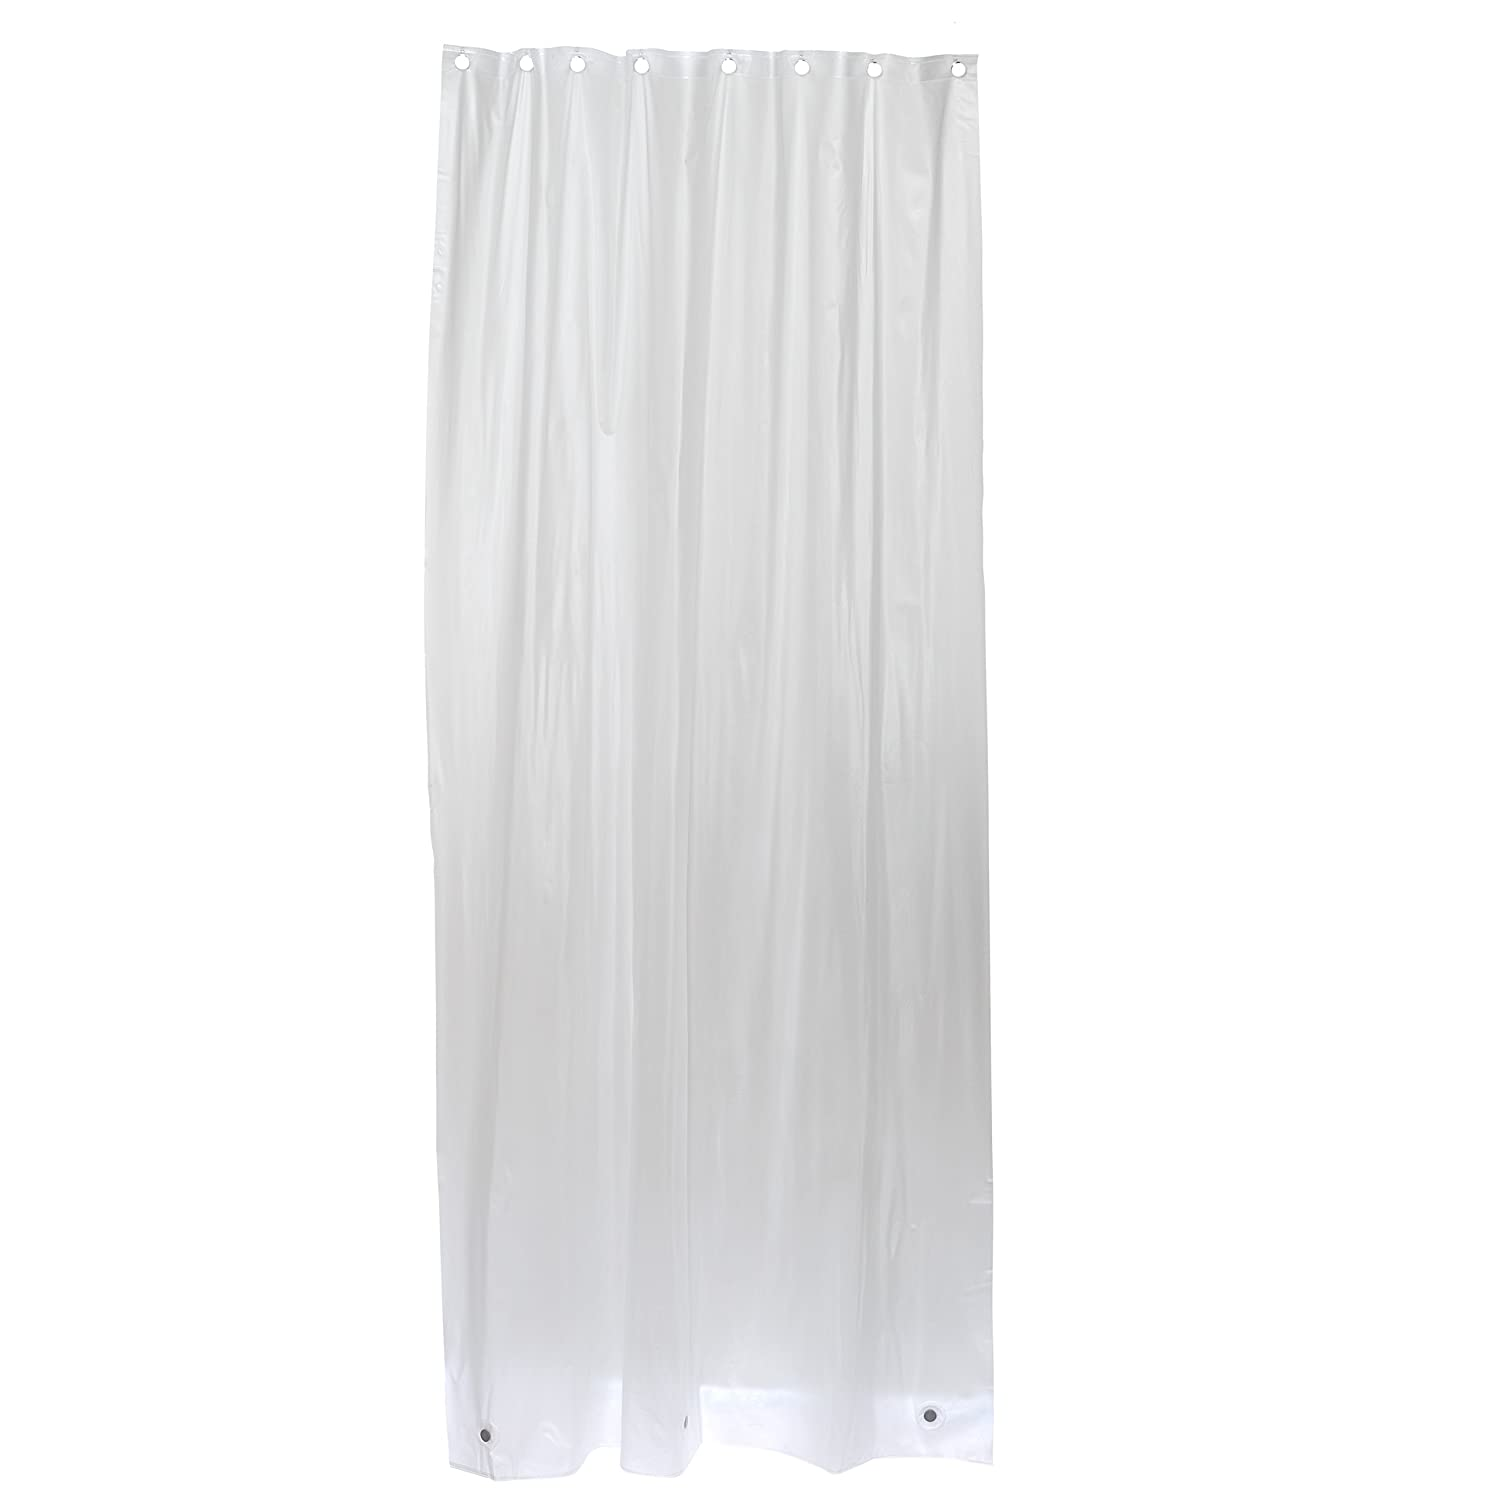 Amazon.com: Zenna Home H26KK, Vinyl Shower Liner, 42 in x 78 in ...